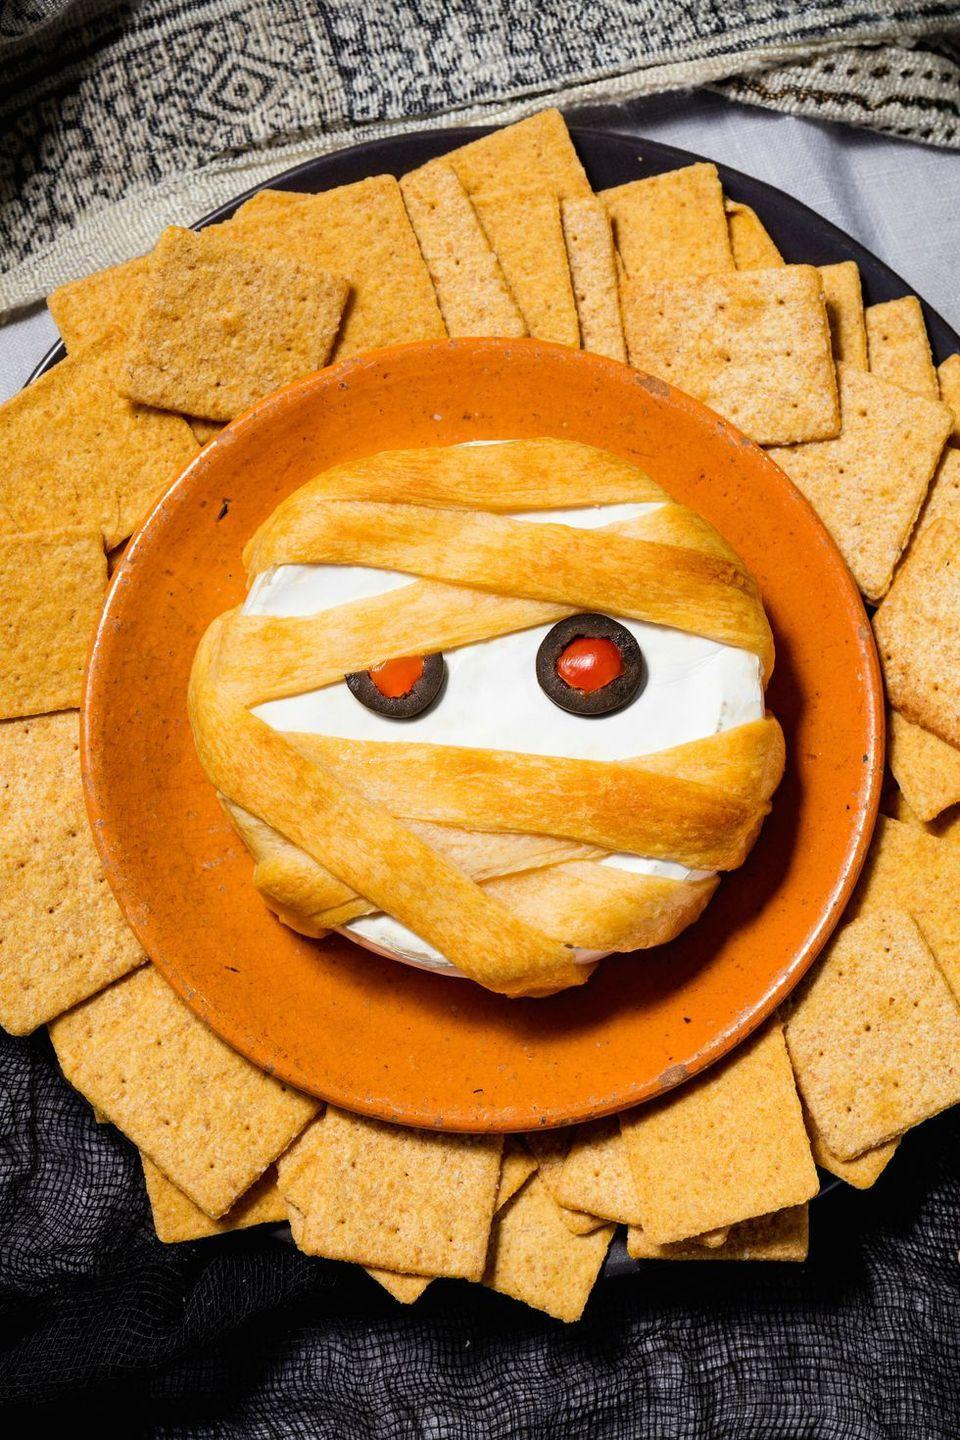 """<p>Give Brie cheese a makeover by layering pieces of puff pastry on top to create a mummy that watches you each time you go to take a bite.</p><p><em>Get the recipe from <a href=""""https://www.delish.com/holiday-recipes/halloween/recipes/a49347/mummy-brie-recipe/"""" rel=""""nofollow noopener"""" target=""""_blank"""" data-ylk=""""slk:Delish"""" class=""""link rapid-noclick-resp"""">Delish</a>.</em></p>"""